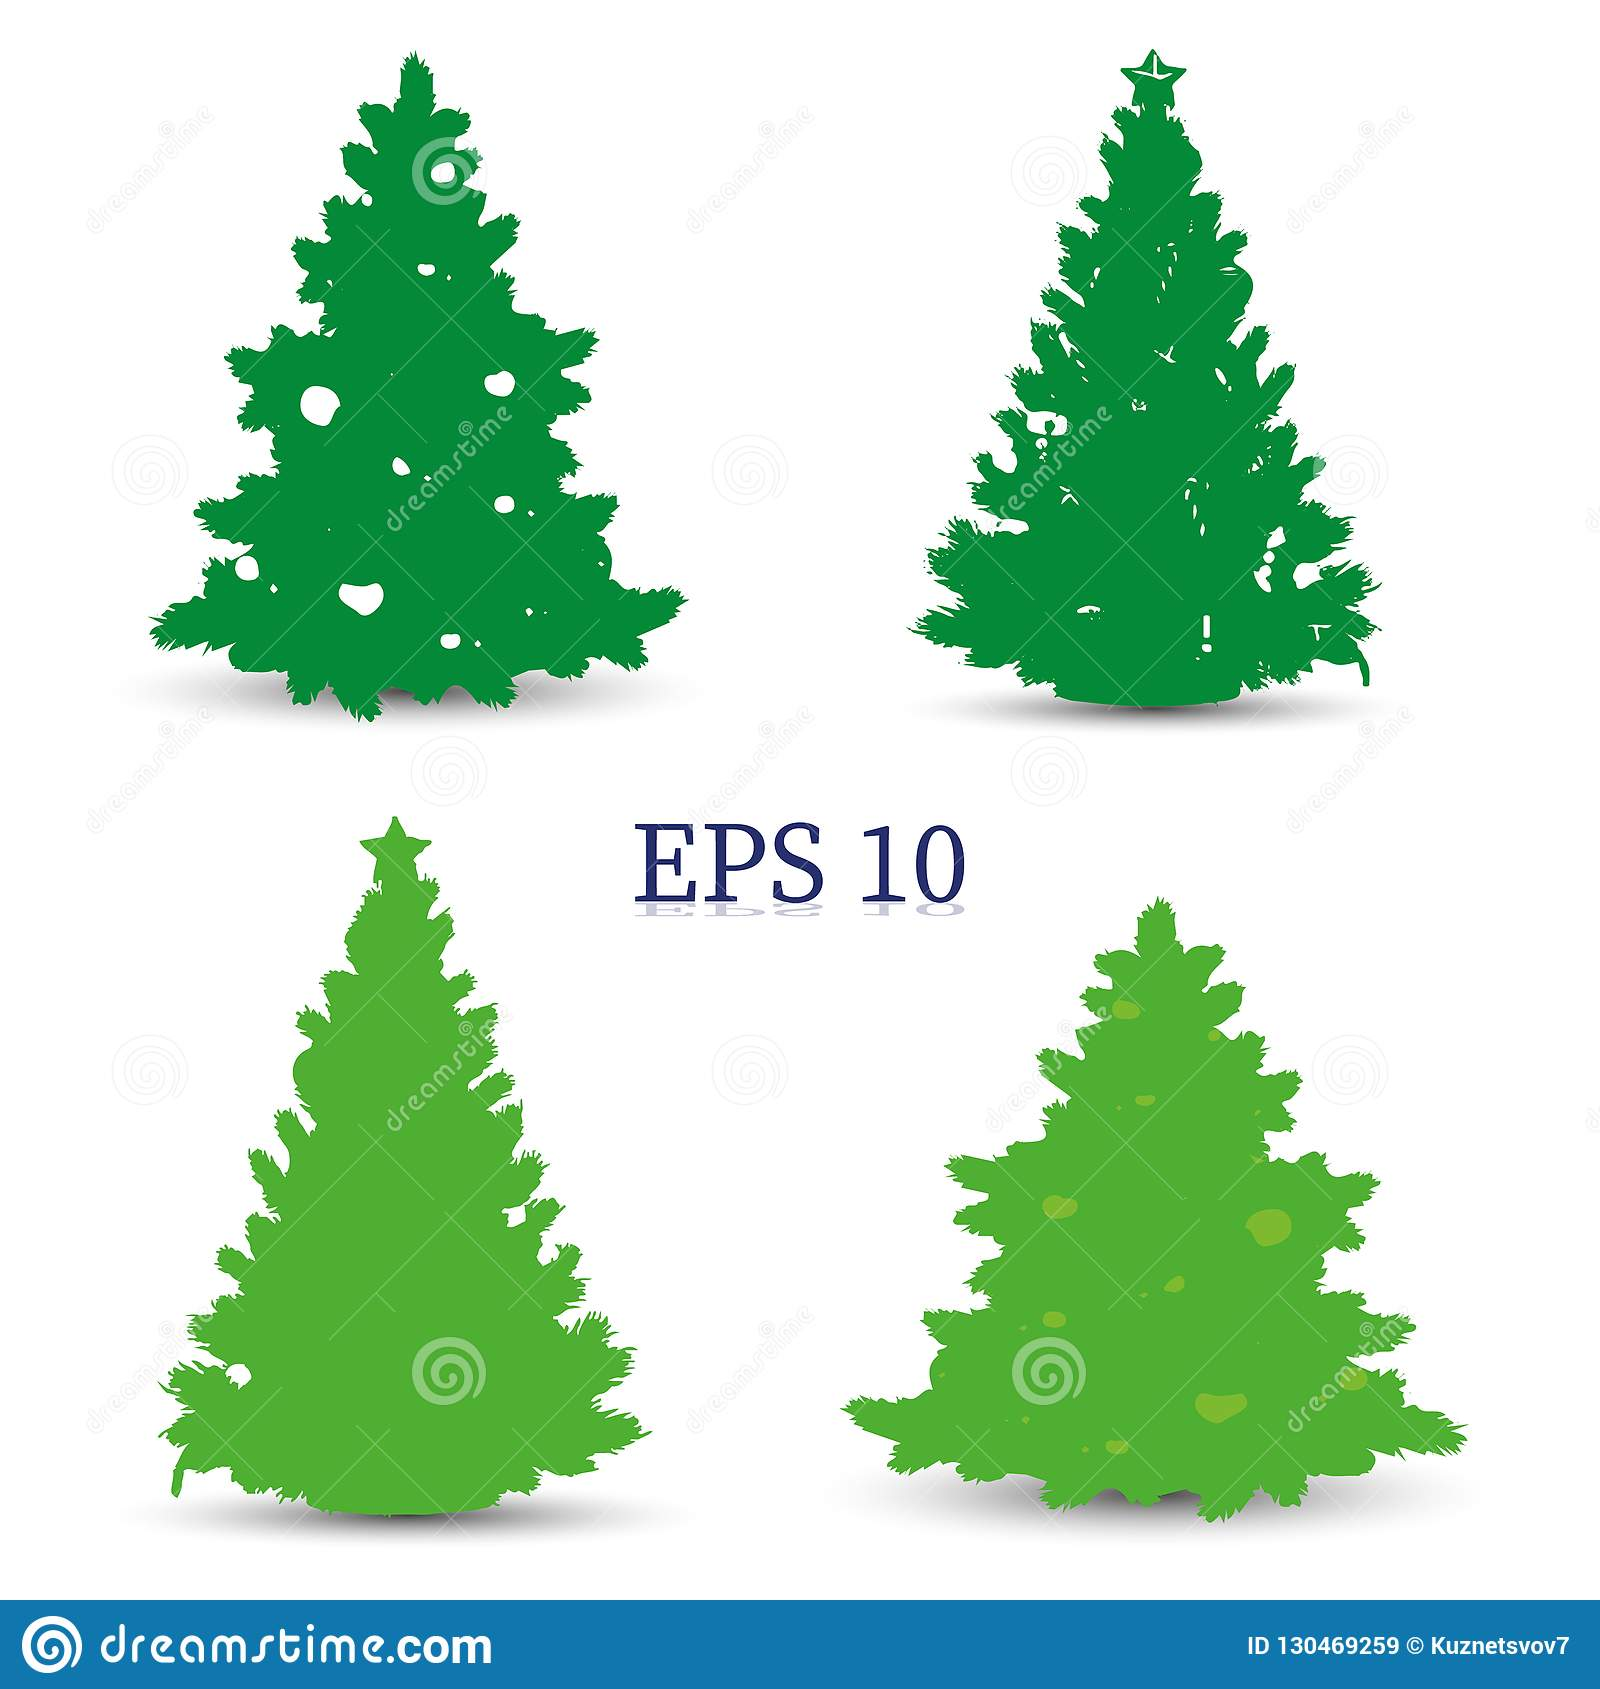 Christmas Trees Silhouette.Set Of Christmas Trees Green Silhouette On White Background